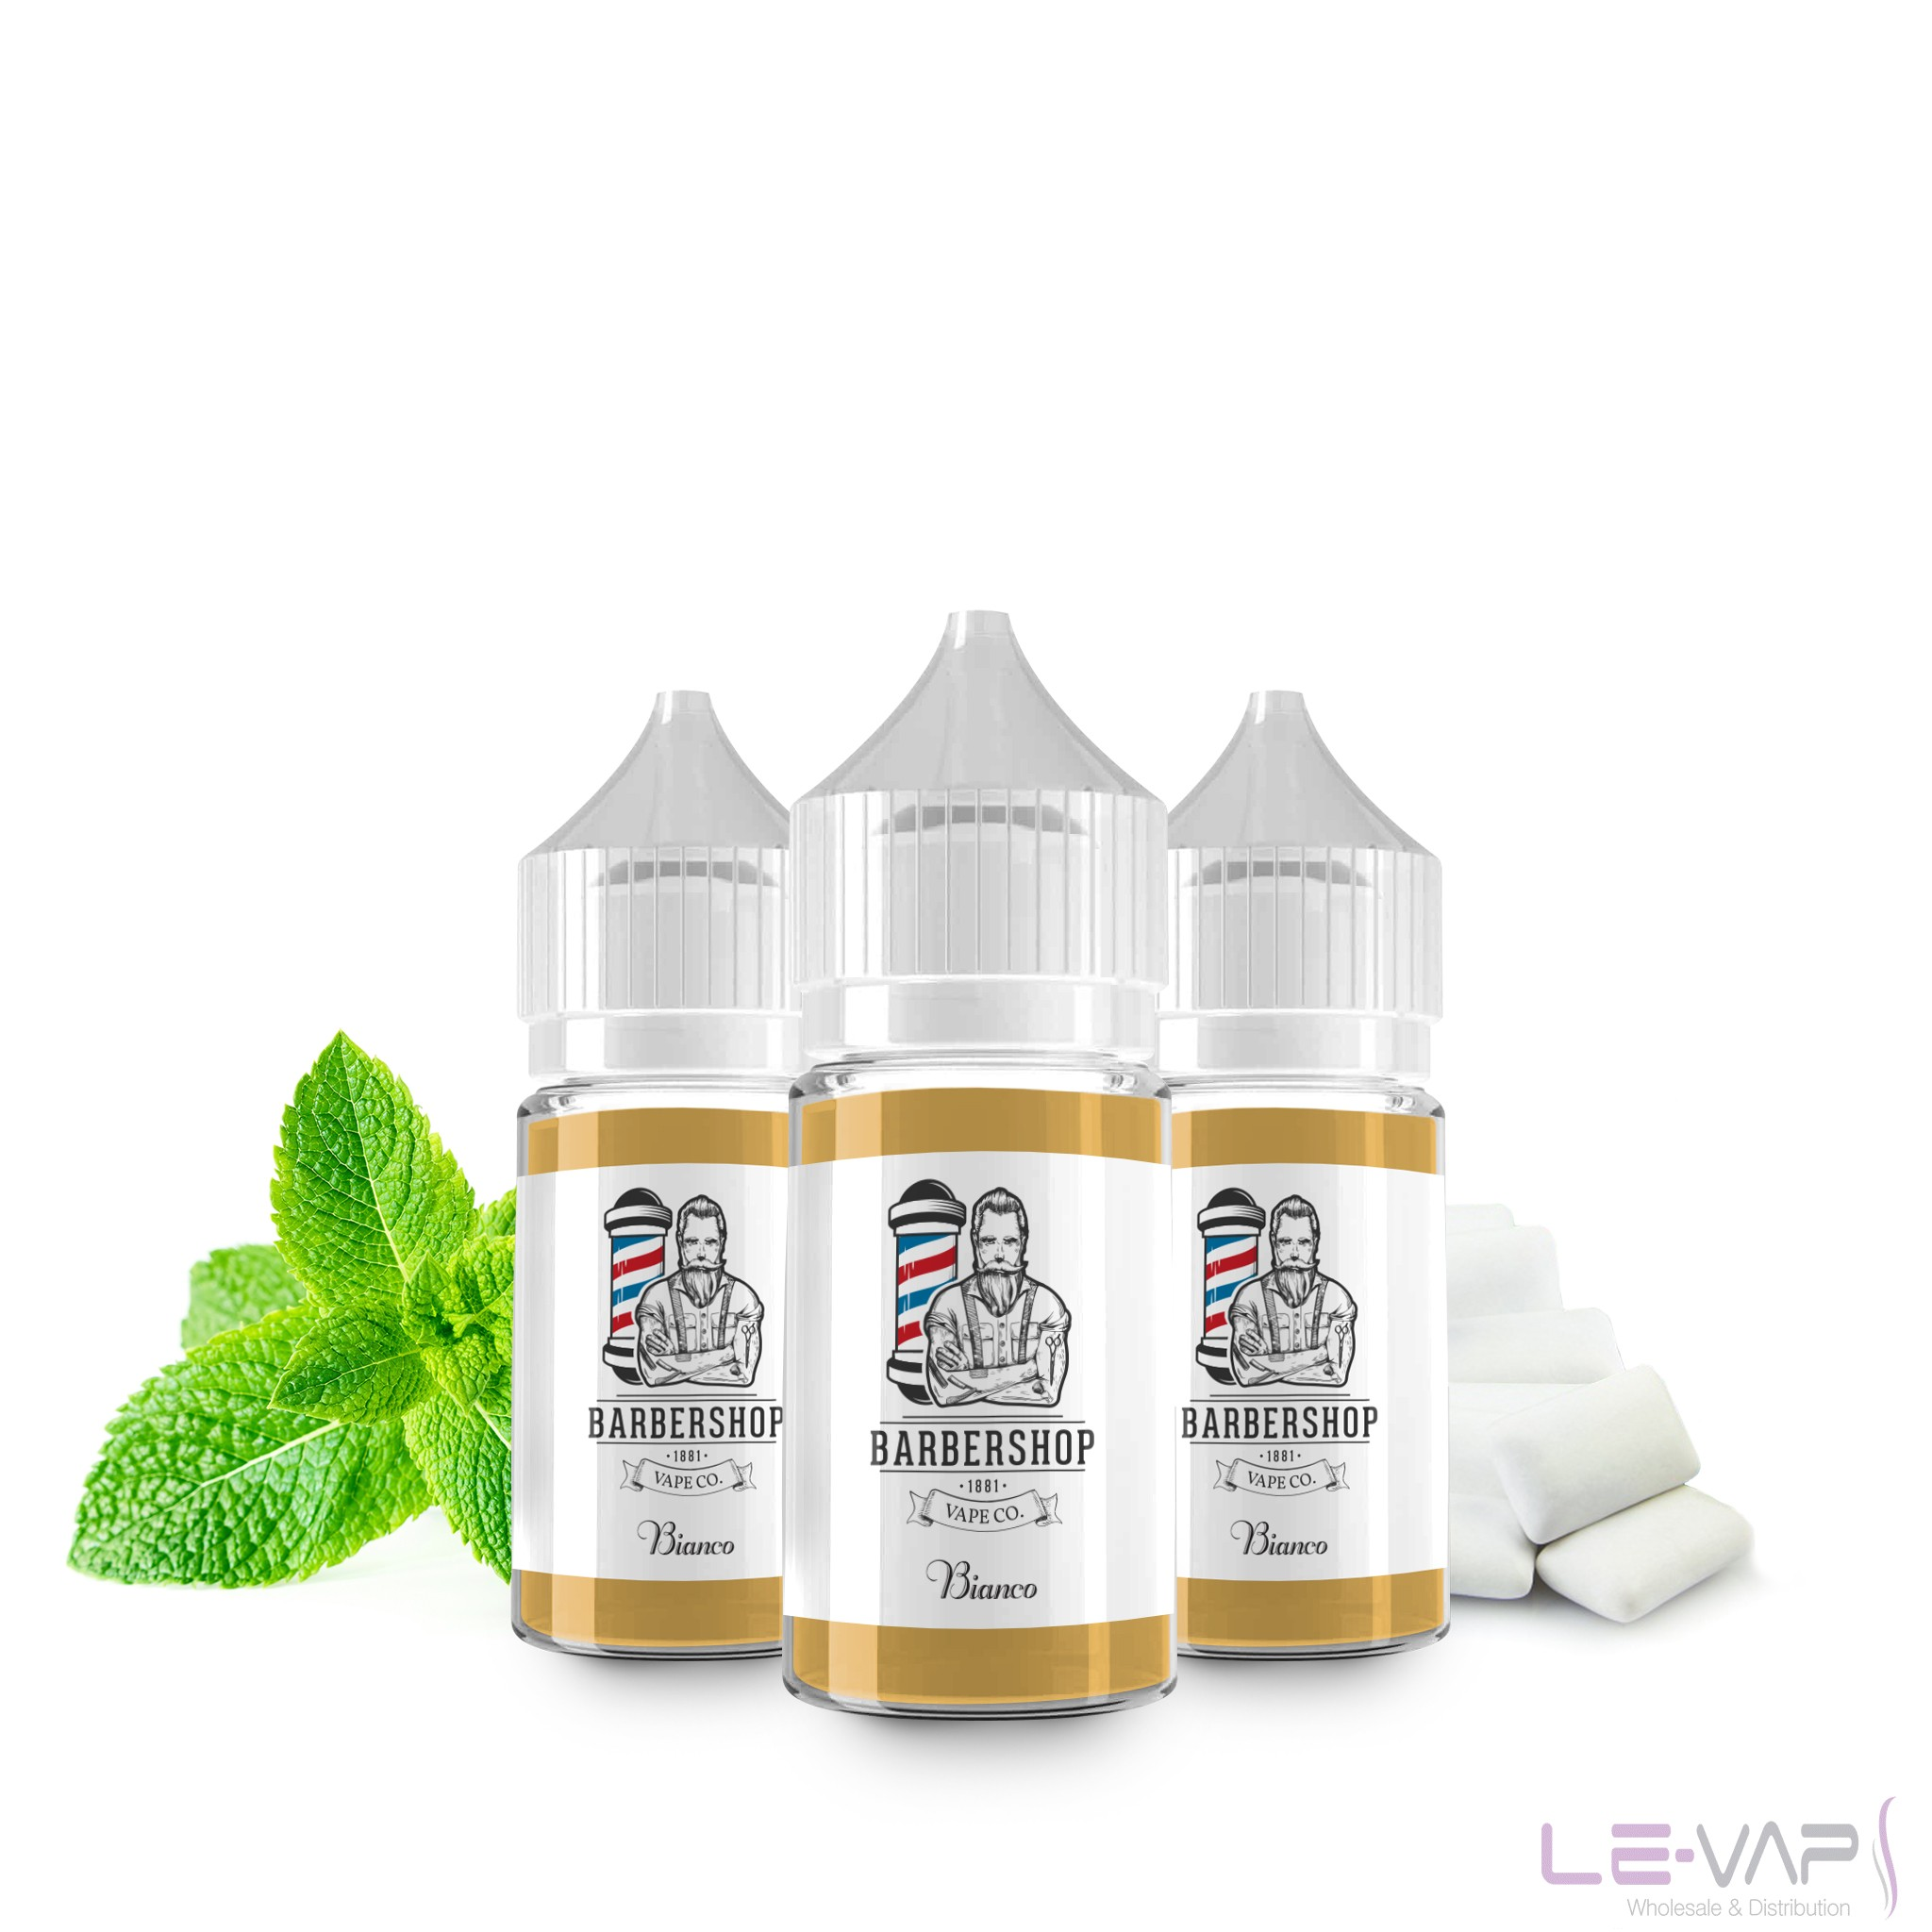 Bianco - Barbershop Vape Co